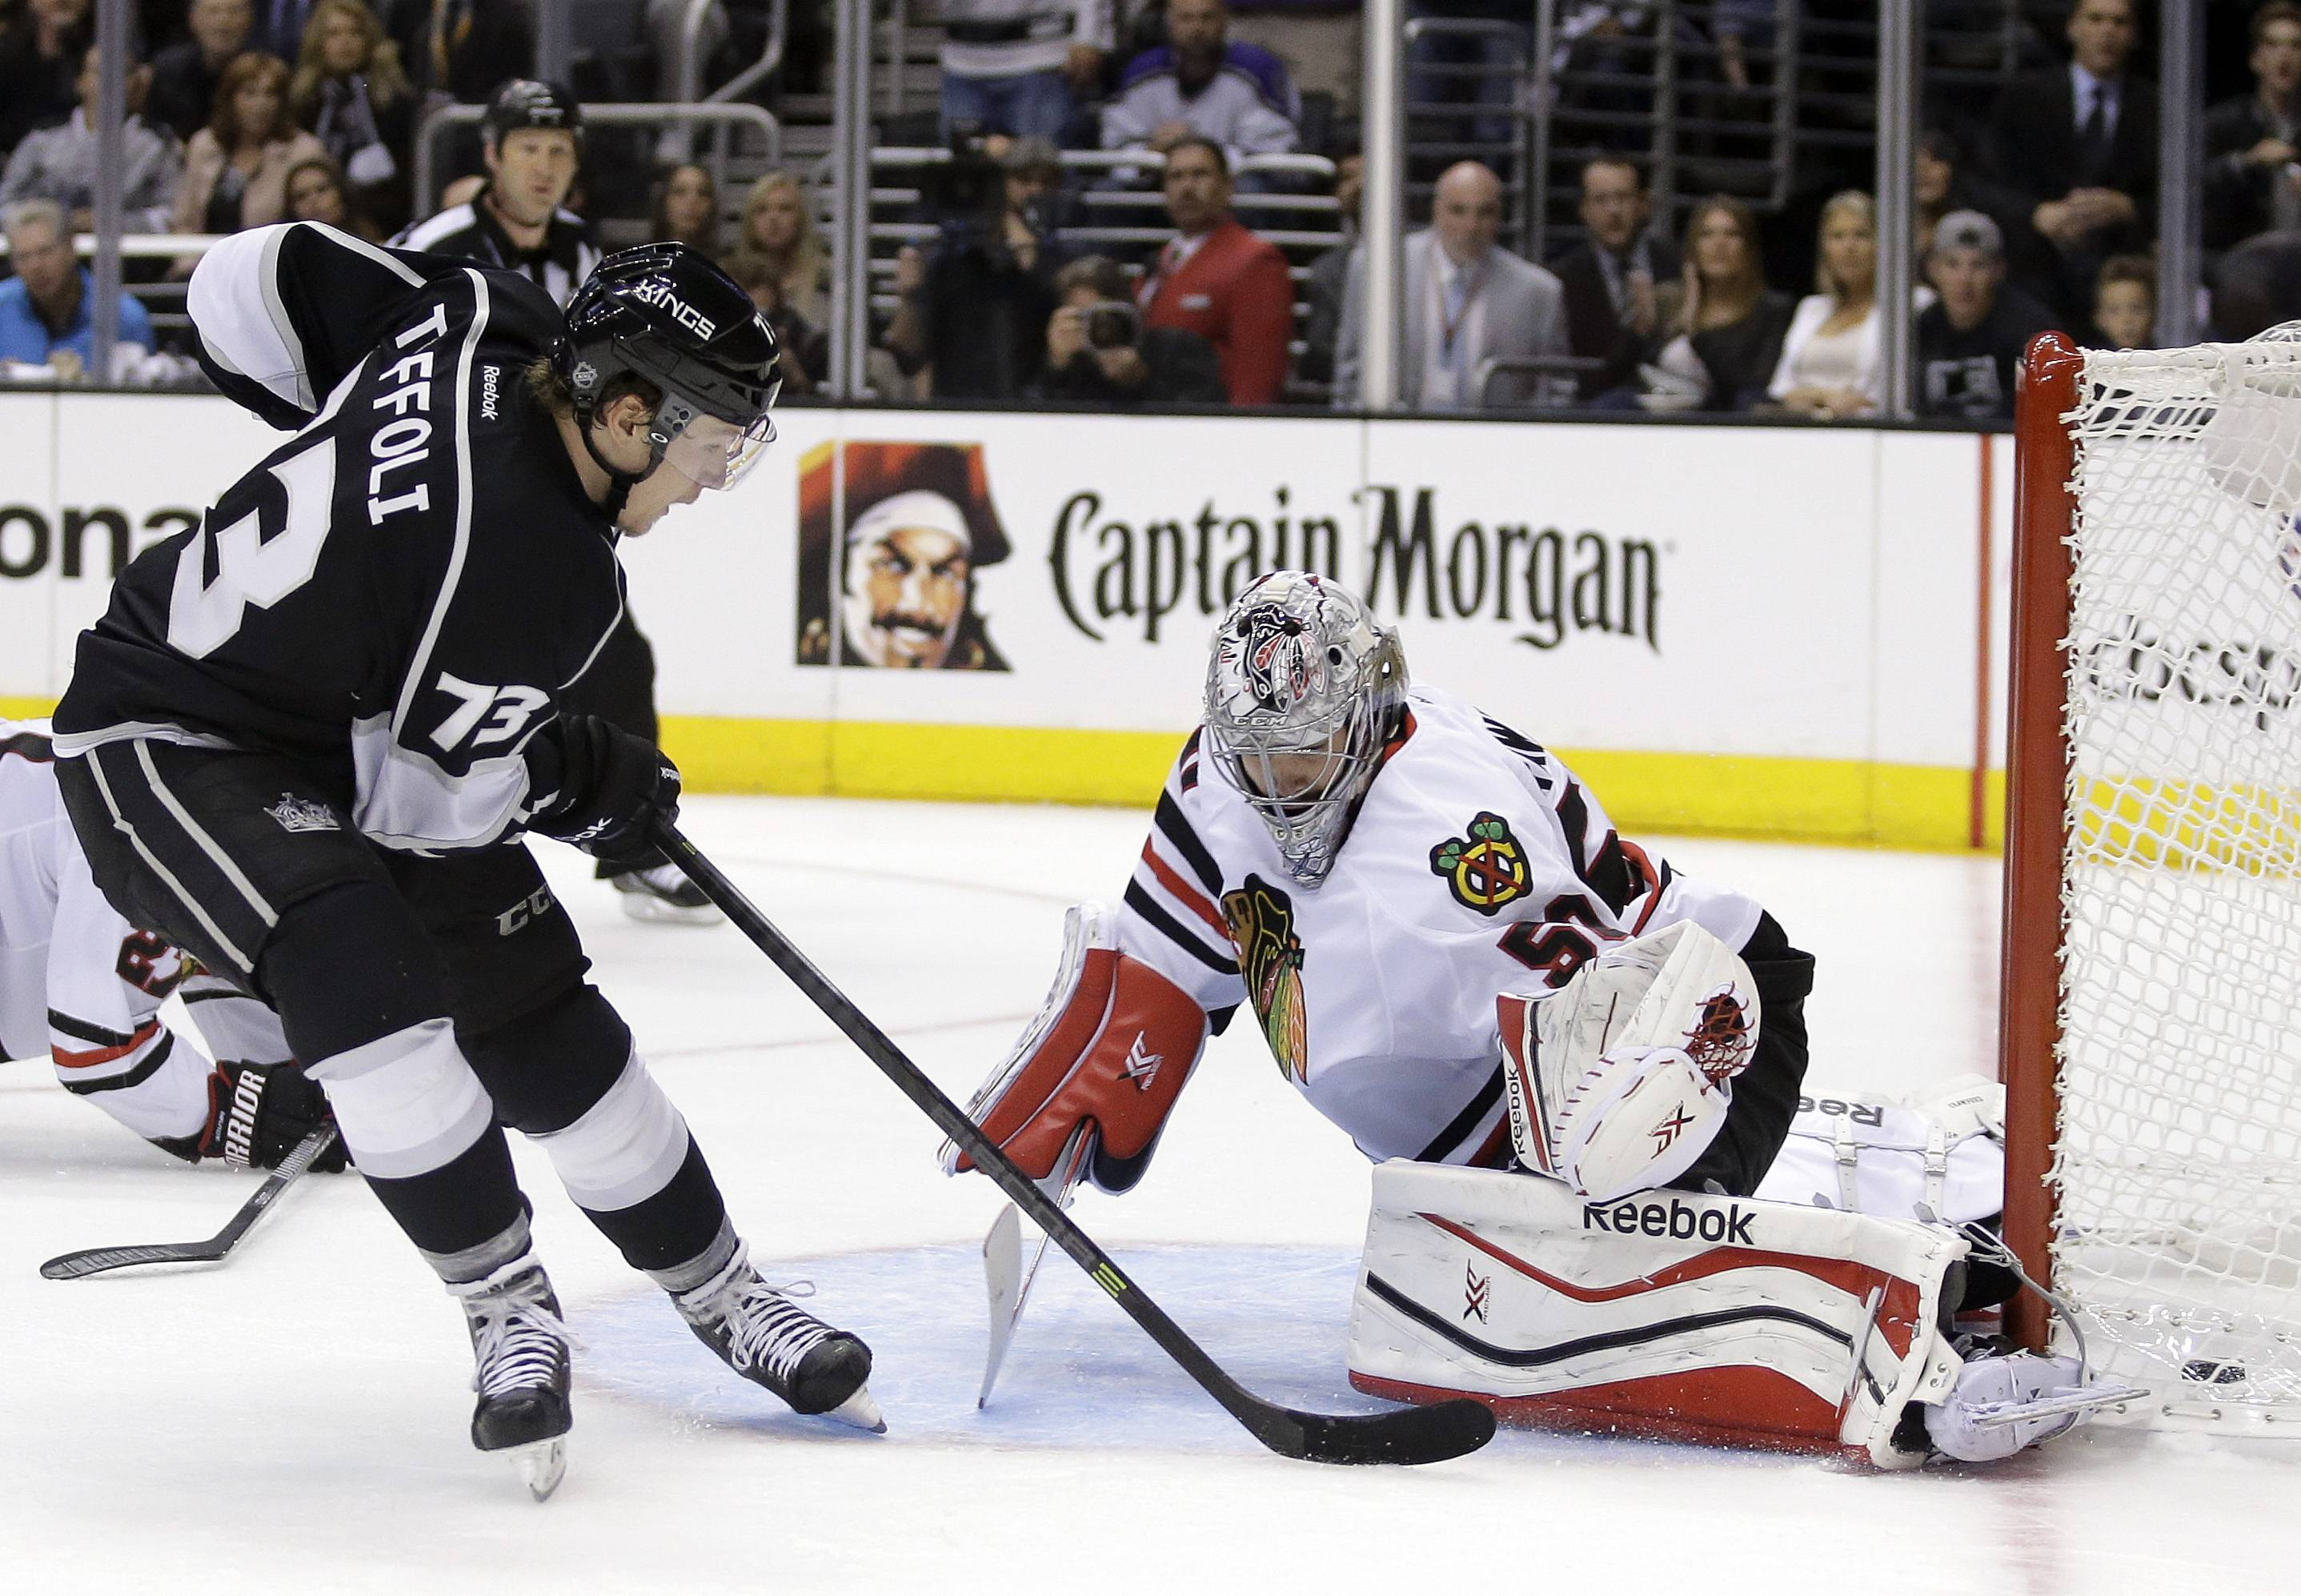 Los Angeles Kings center Tyler Toffoli, left, scores past Chicago Blackhawks goalie Corey Crawford during the second period of Game 3 of the Western Conference finals of the NHL hockey Stanley Cup playoffs in Los Angeles, Saturday, May 24, 2014.